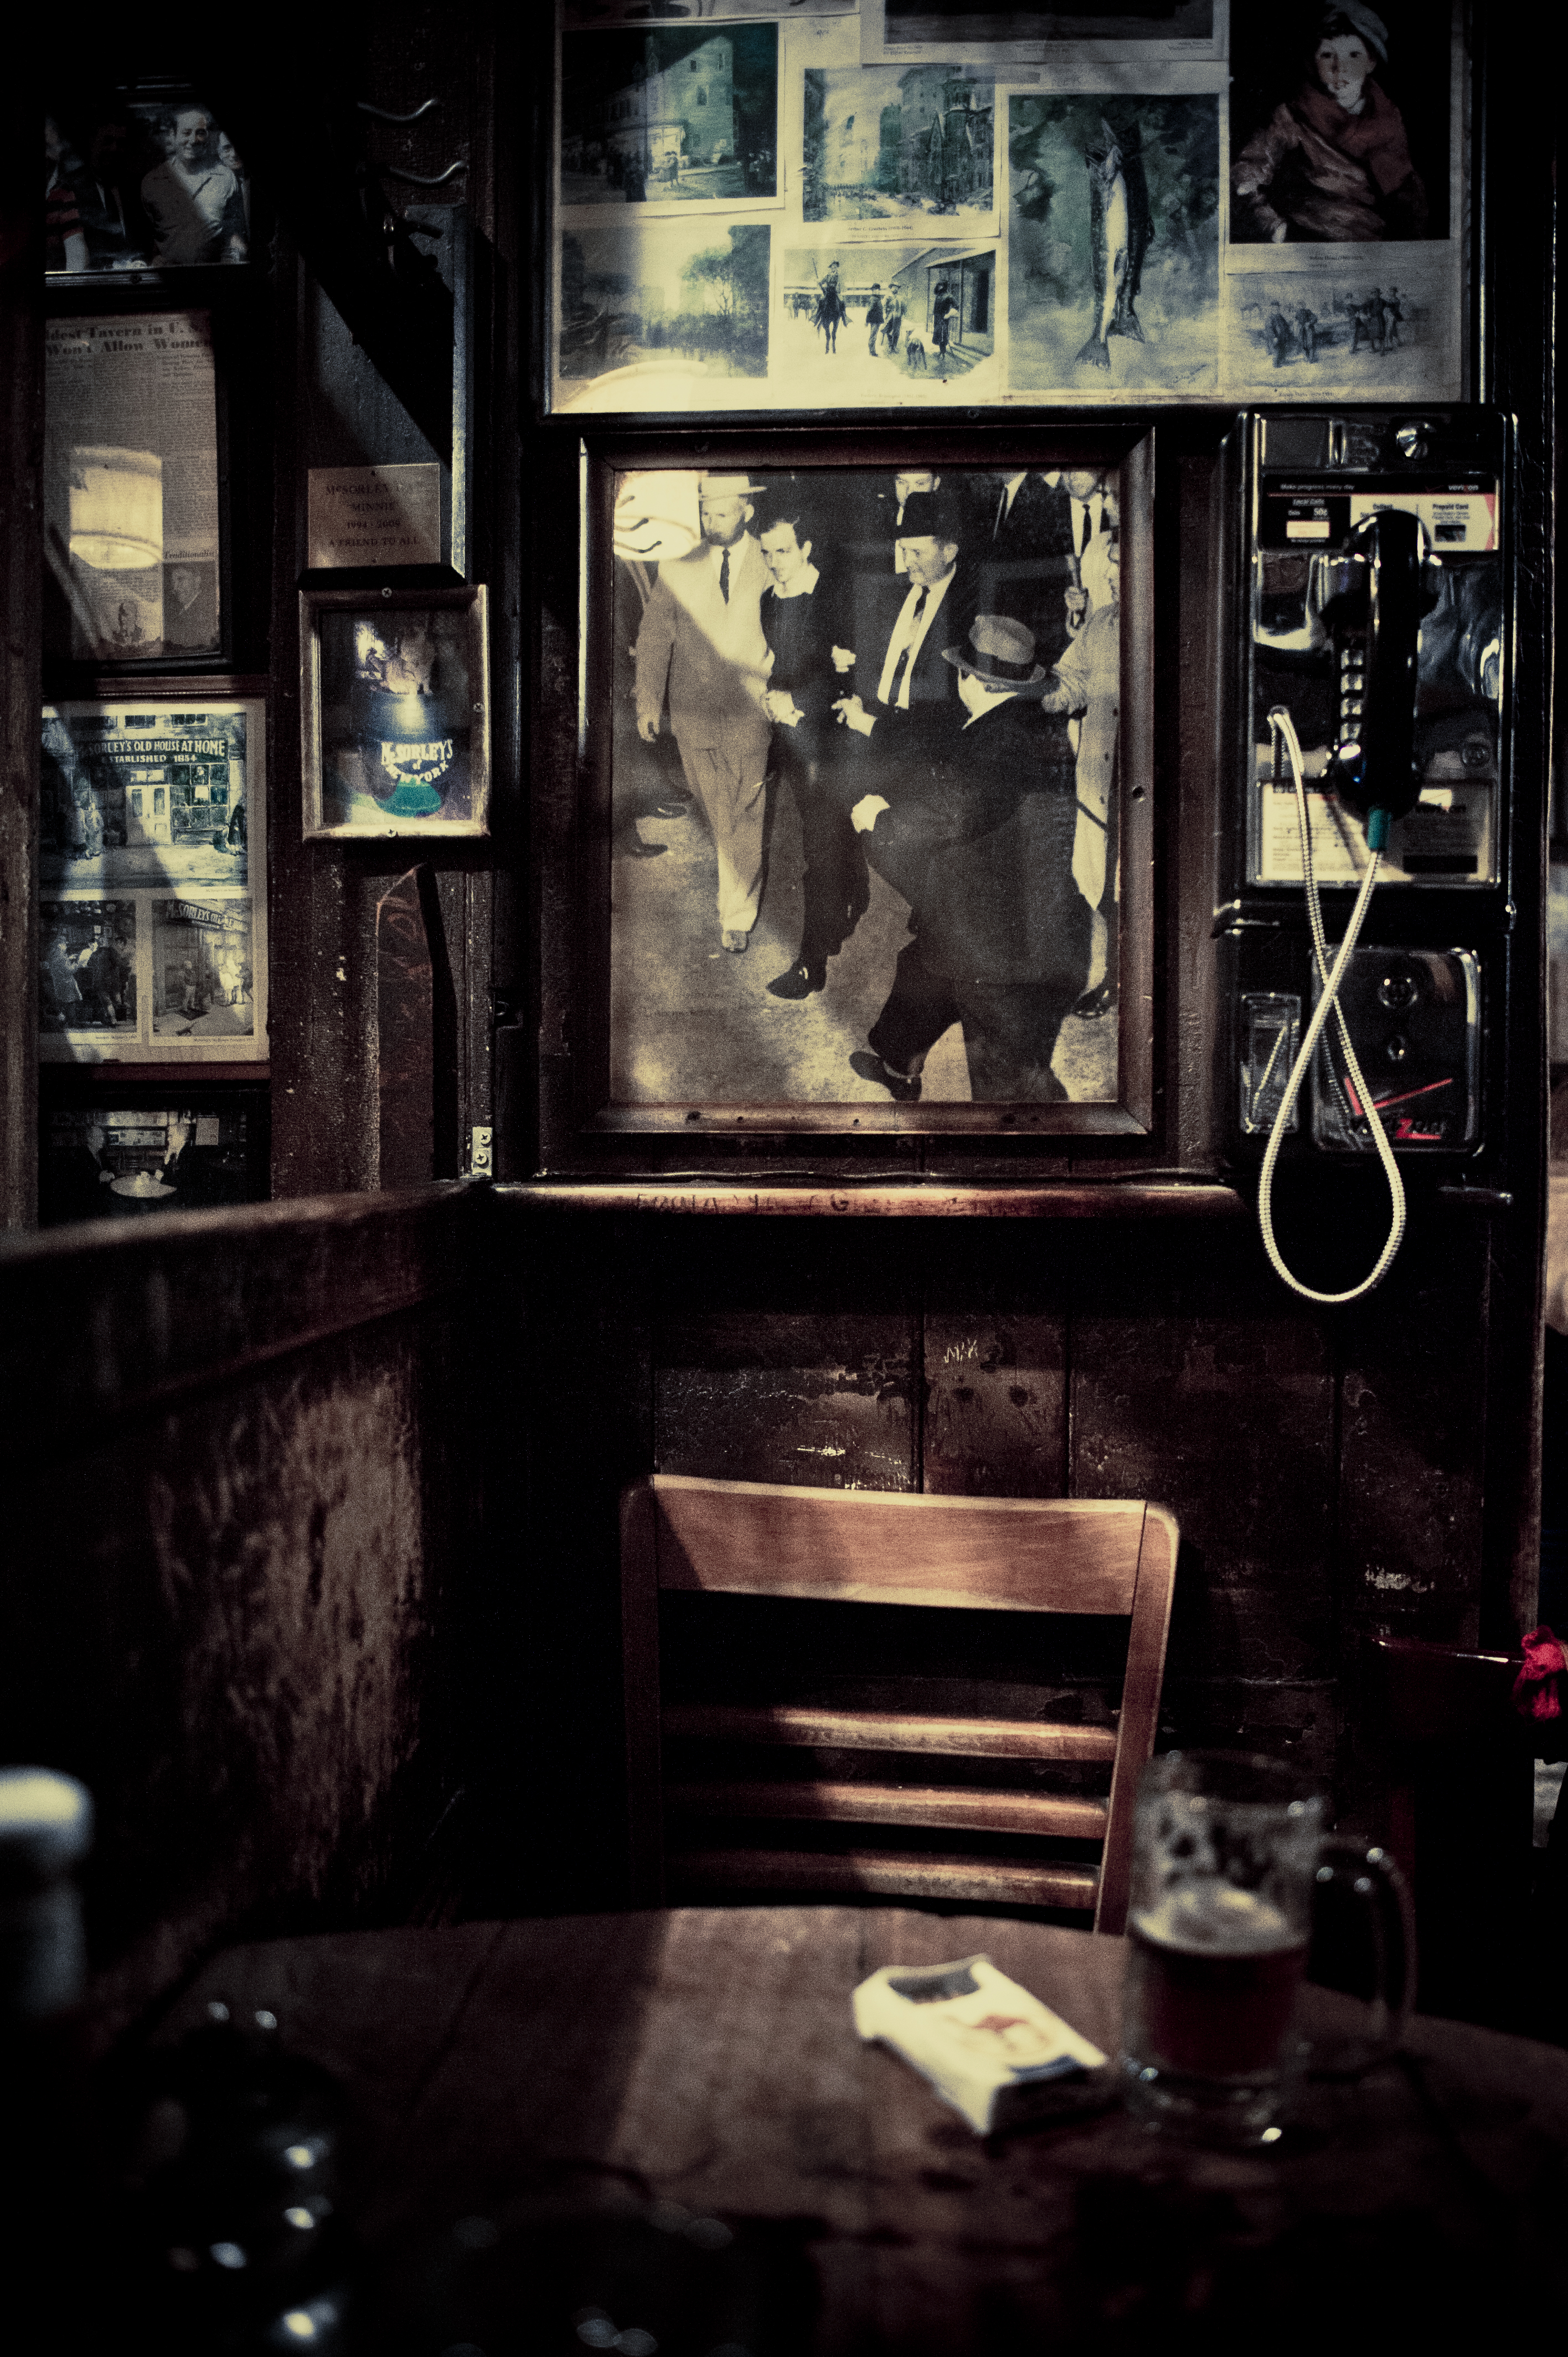 McSorley's, New York City.